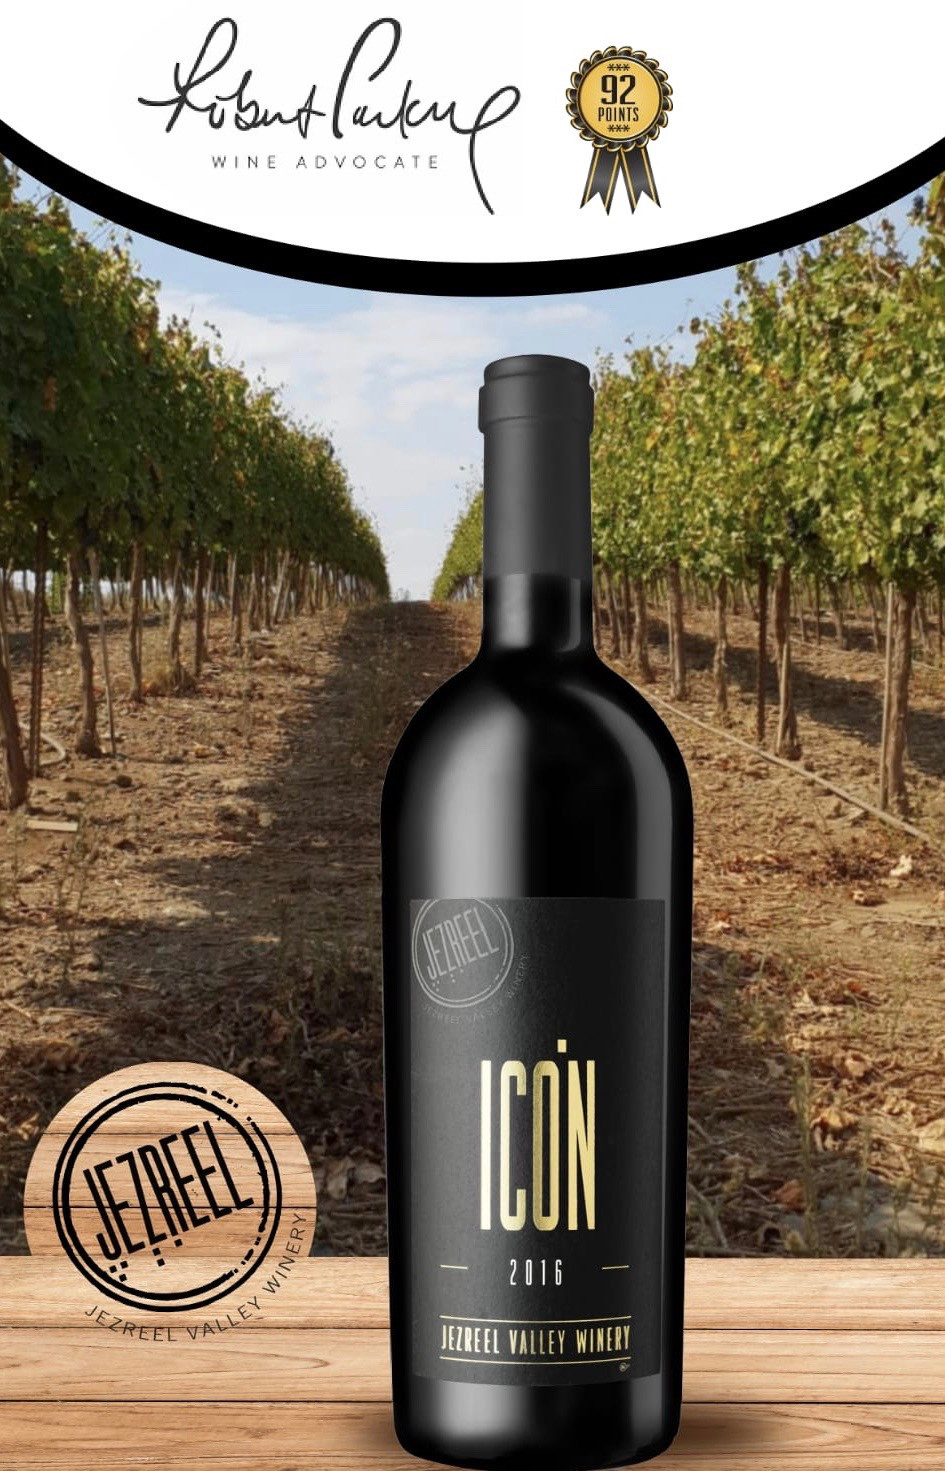 Jezreel's 2016 Icon recently received a 92 rating from Robert Parker of The Wine Advocate.